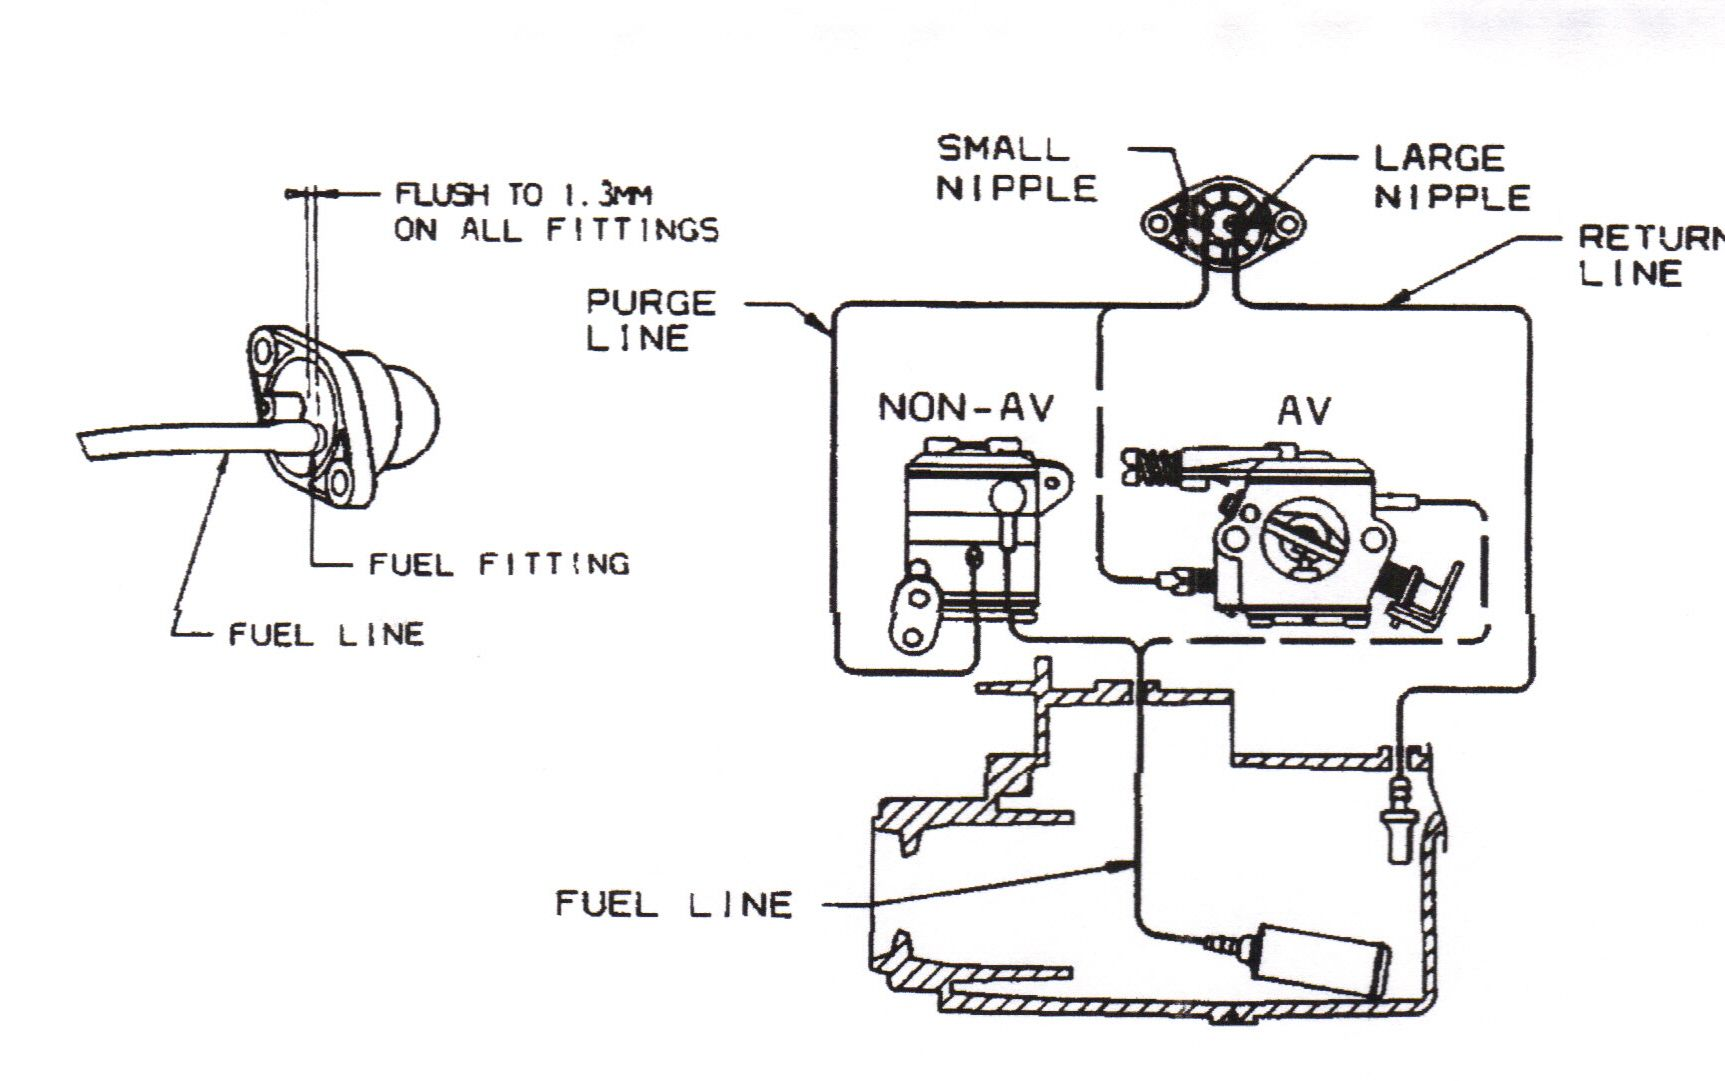 related image line diagram mcculloch chainsaw poulan chainsaw small engine image search [ 1725 x 1081 Pixel ]